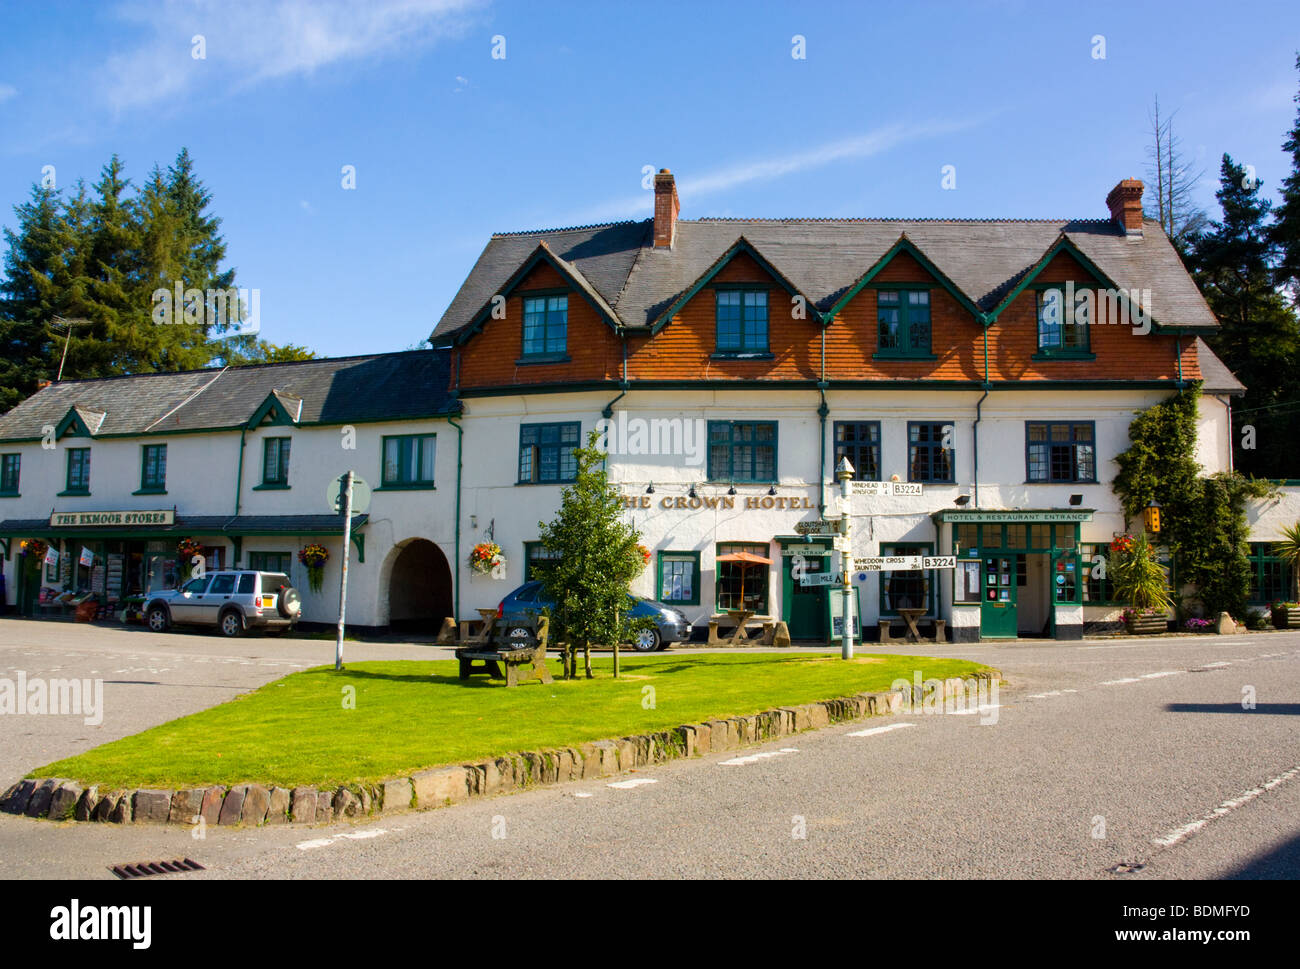 Crown Hotel and Exford Stores at Exford, Somerset England UK - Stock Image